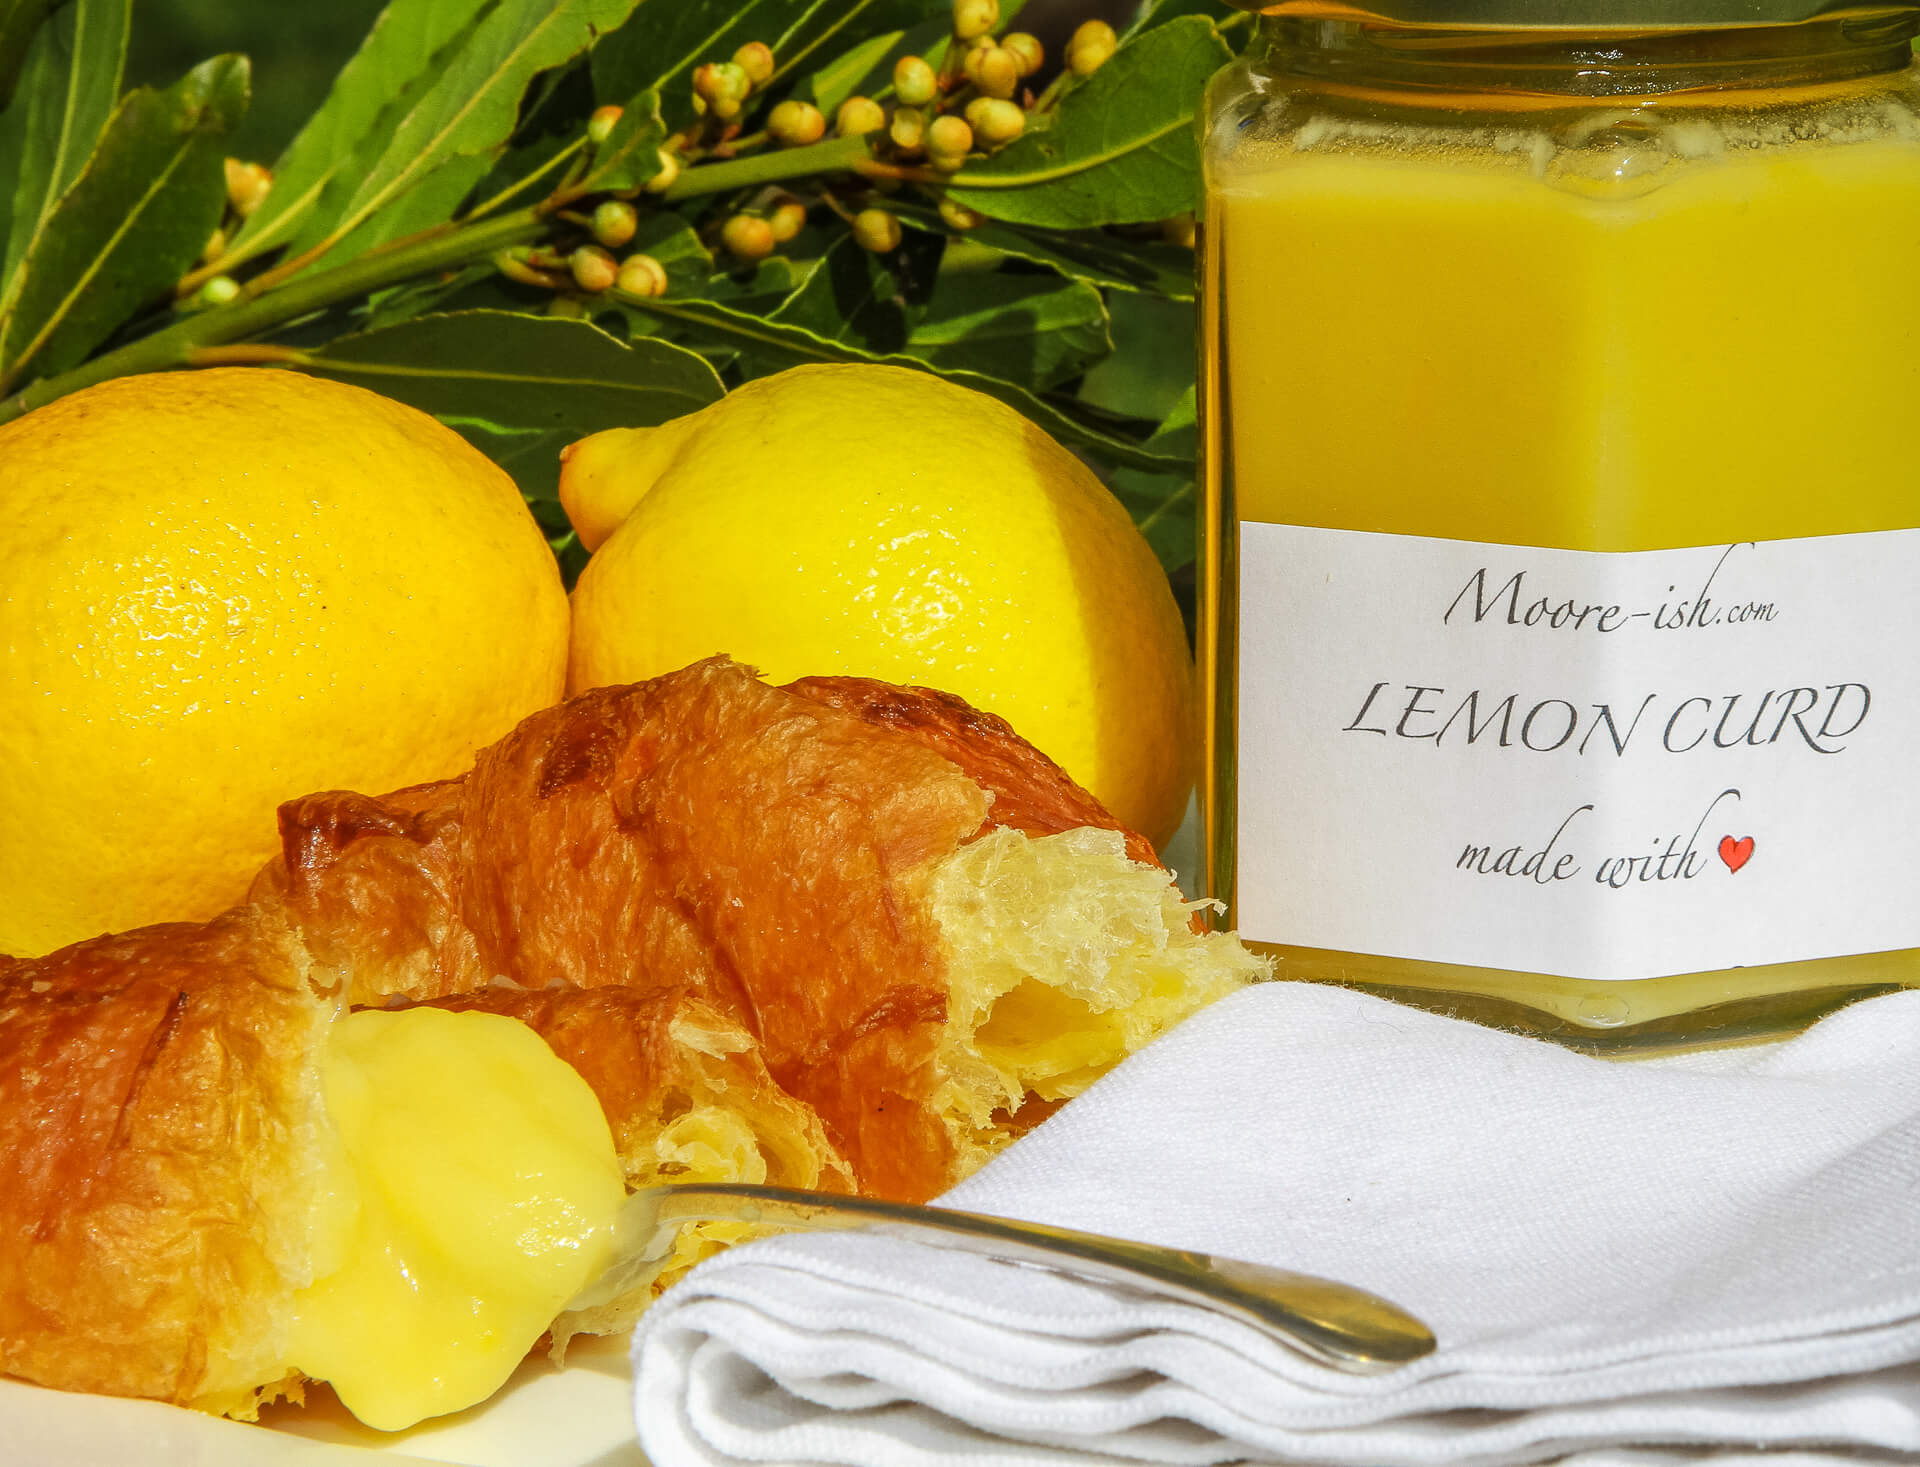 A Fresh Croissant With A Generous Helping of Lemon Curd On A Spoon and A Jar Of Mooreish Lemon Curd